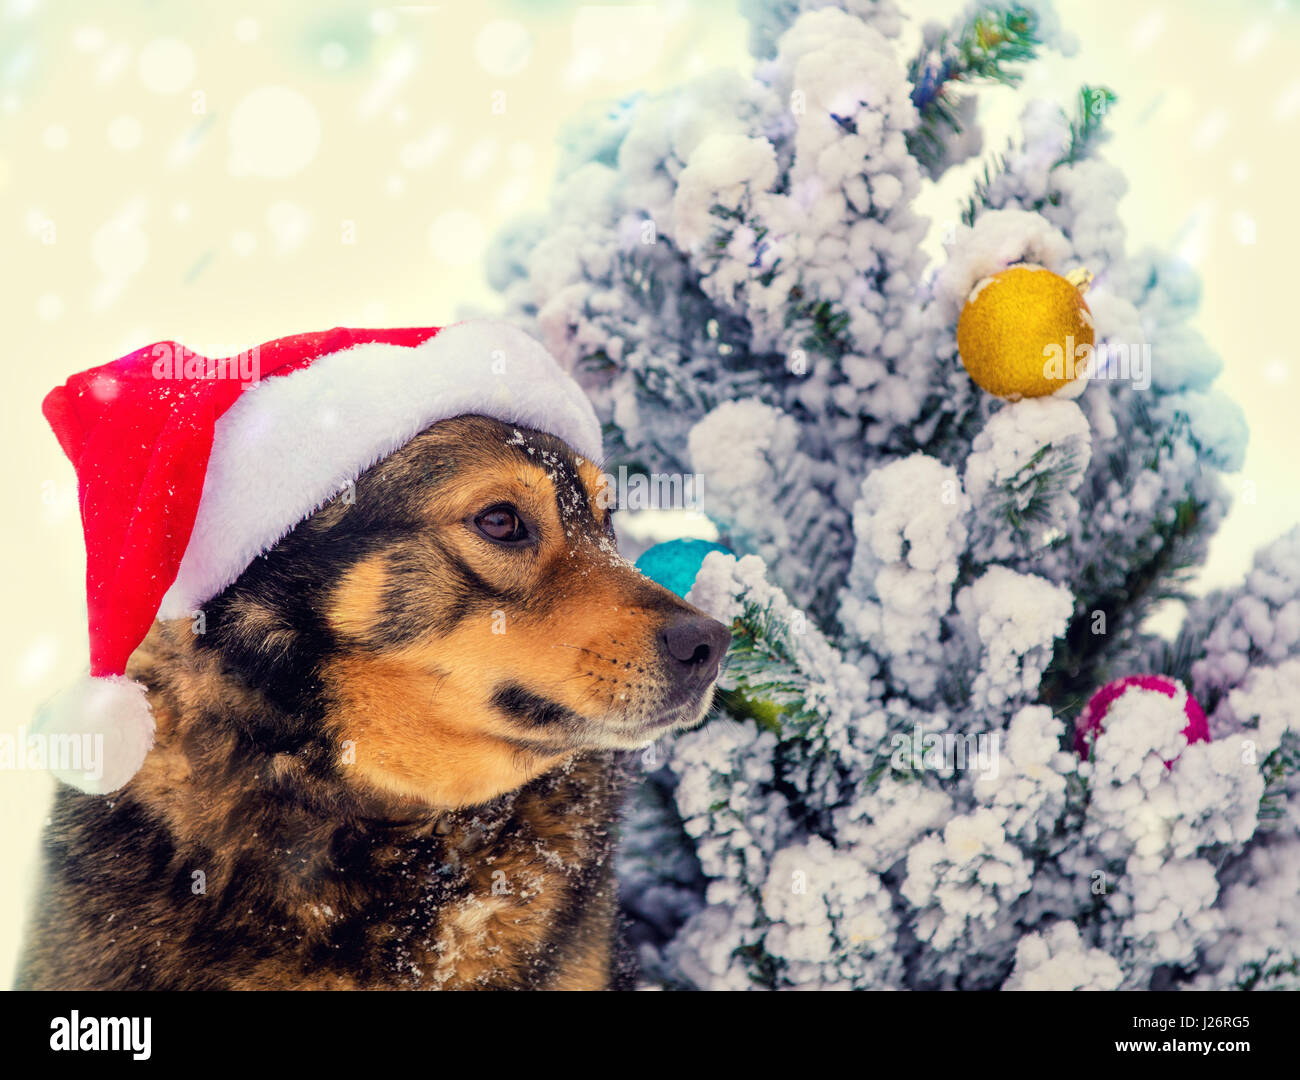 Fox with a hat new year or christmas animal isolated on white - Dog Wearing Santa Hat Outdoor Near Fir Tree Christmas Concept Stock Image